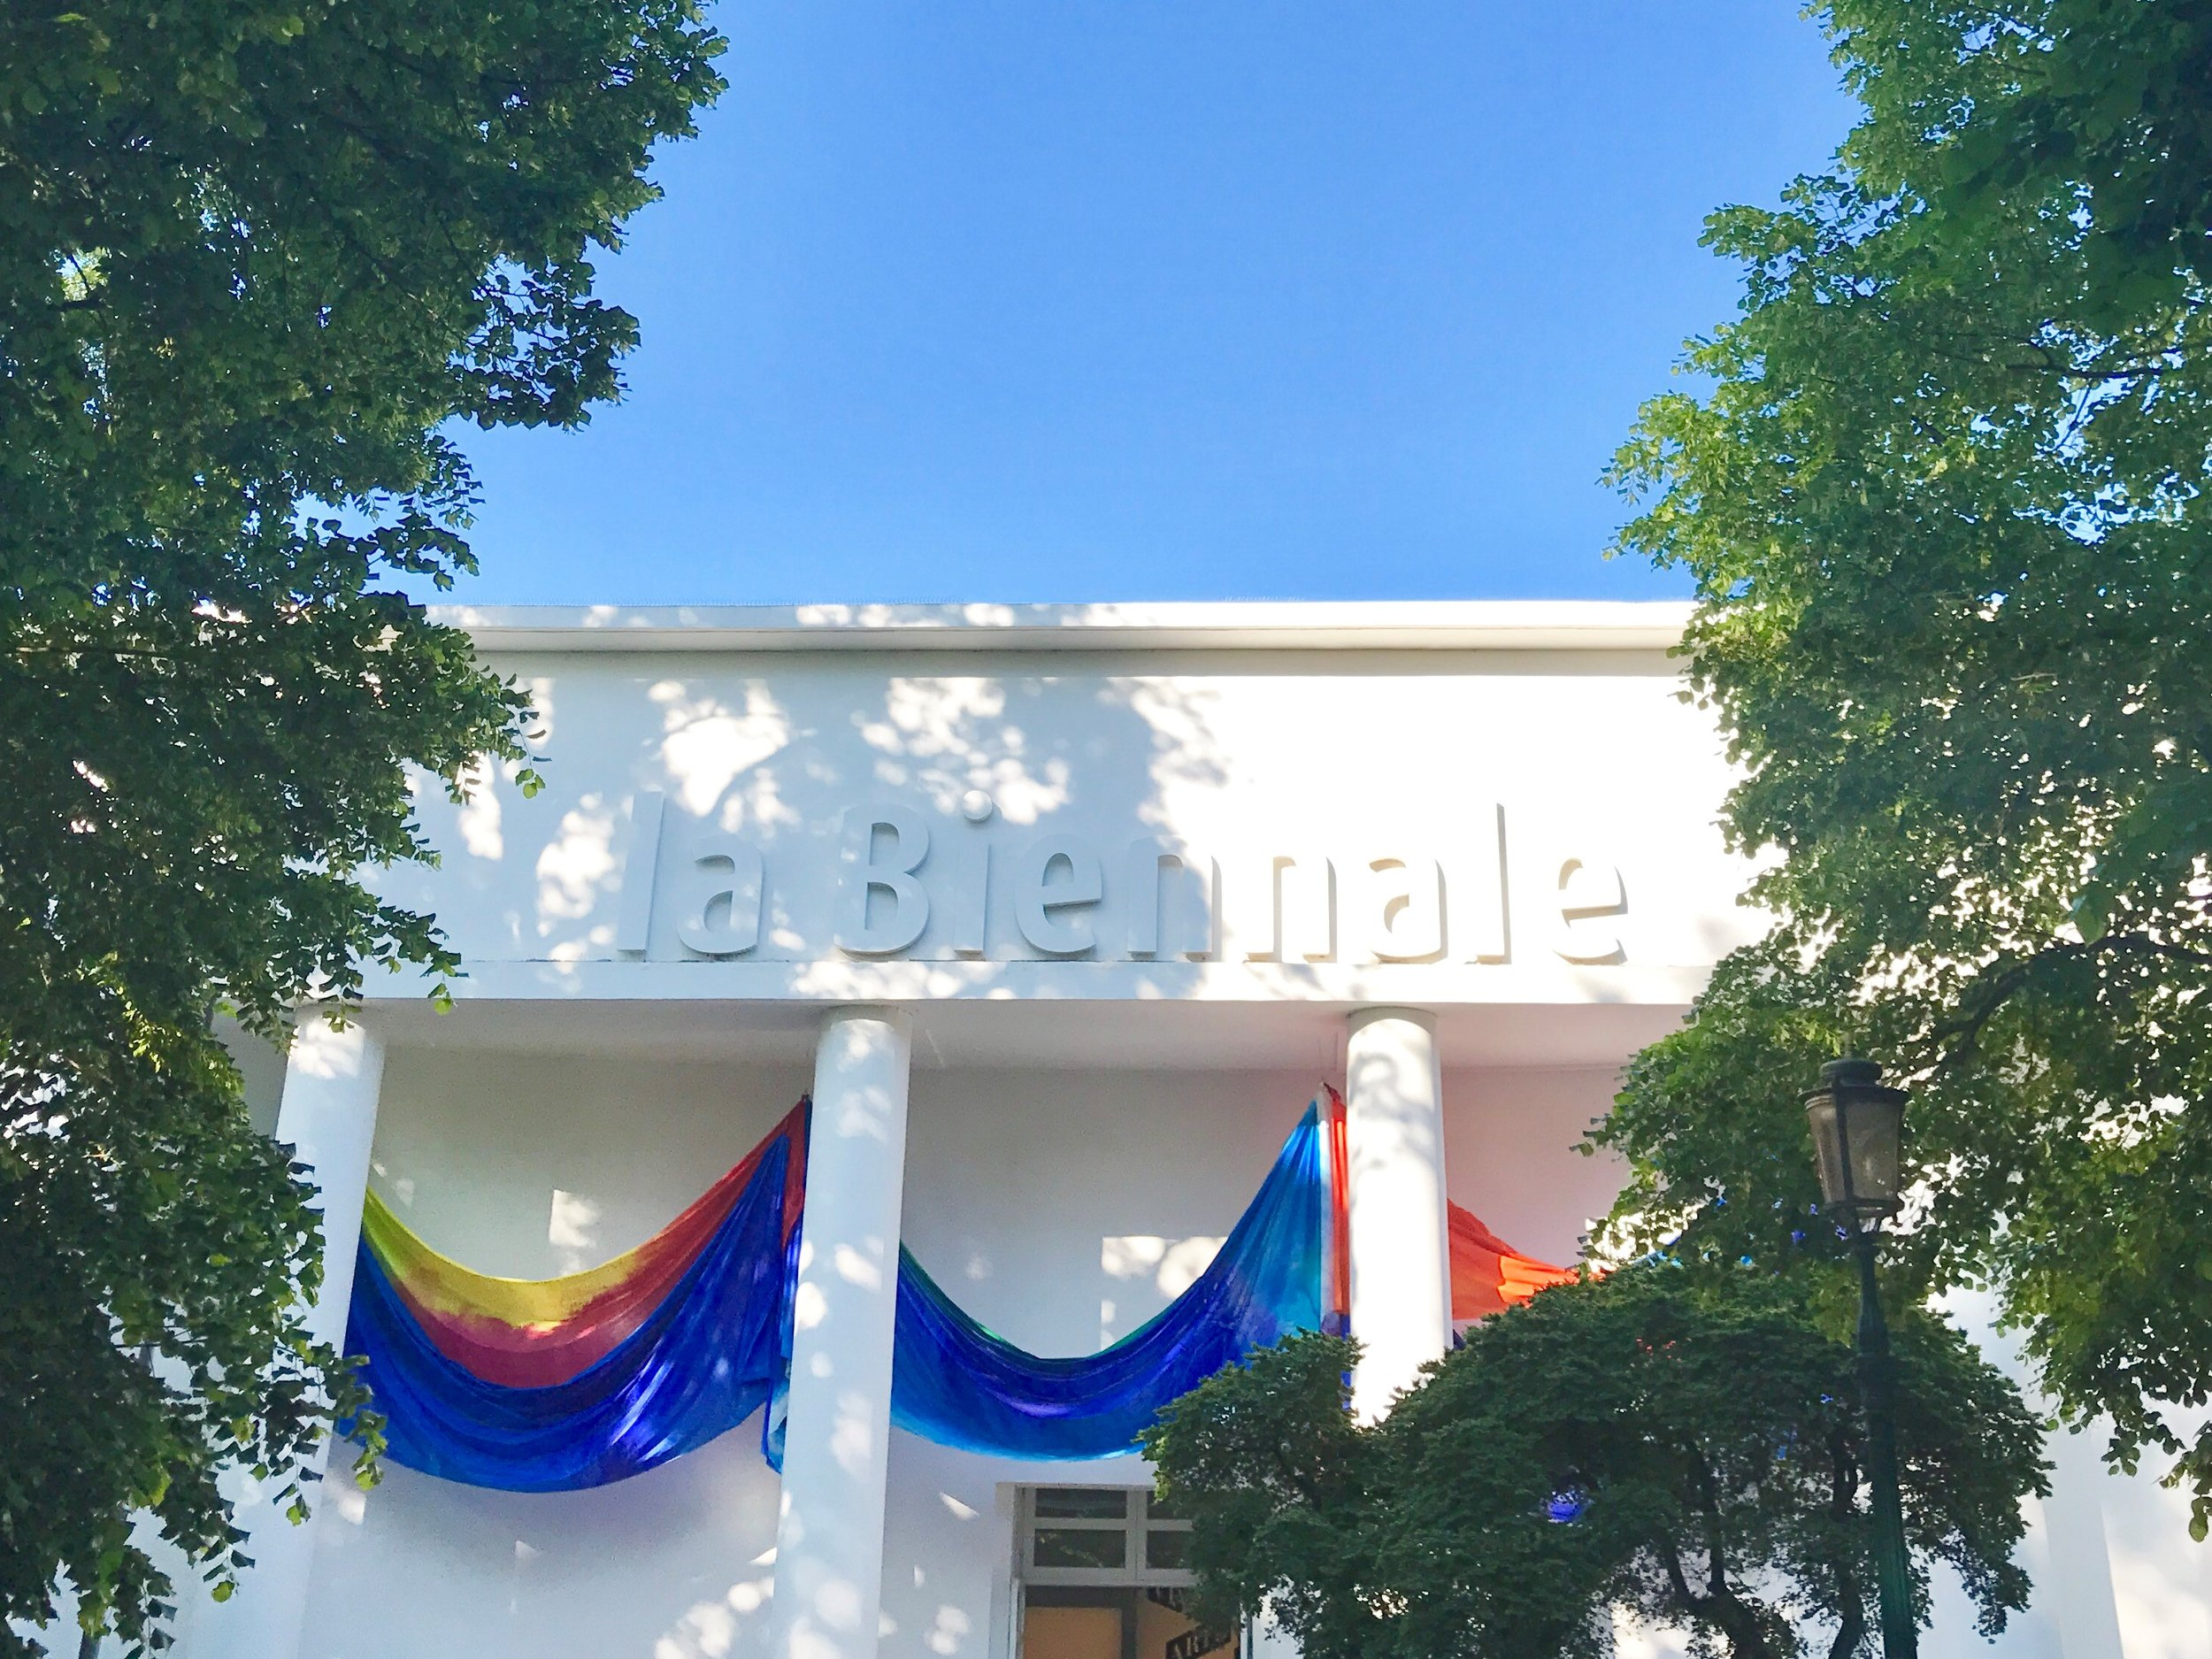 The facade of the Central Pavilion at Giardino with Sam Gilliam's drapes